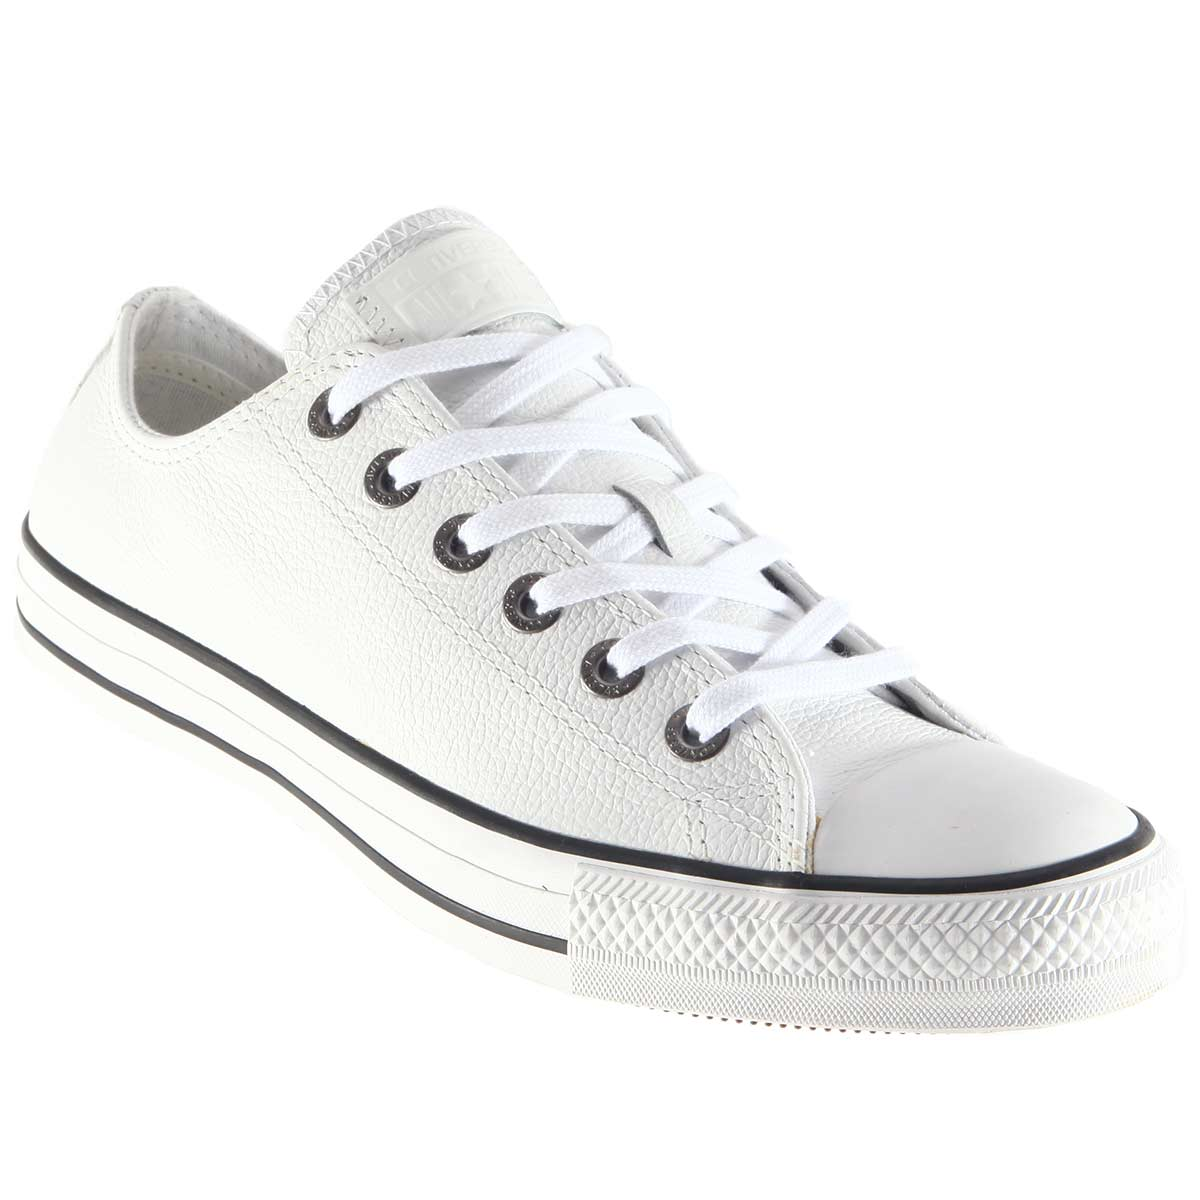 d146cddf1 Tênis Converse All Star Couro Original CT0448